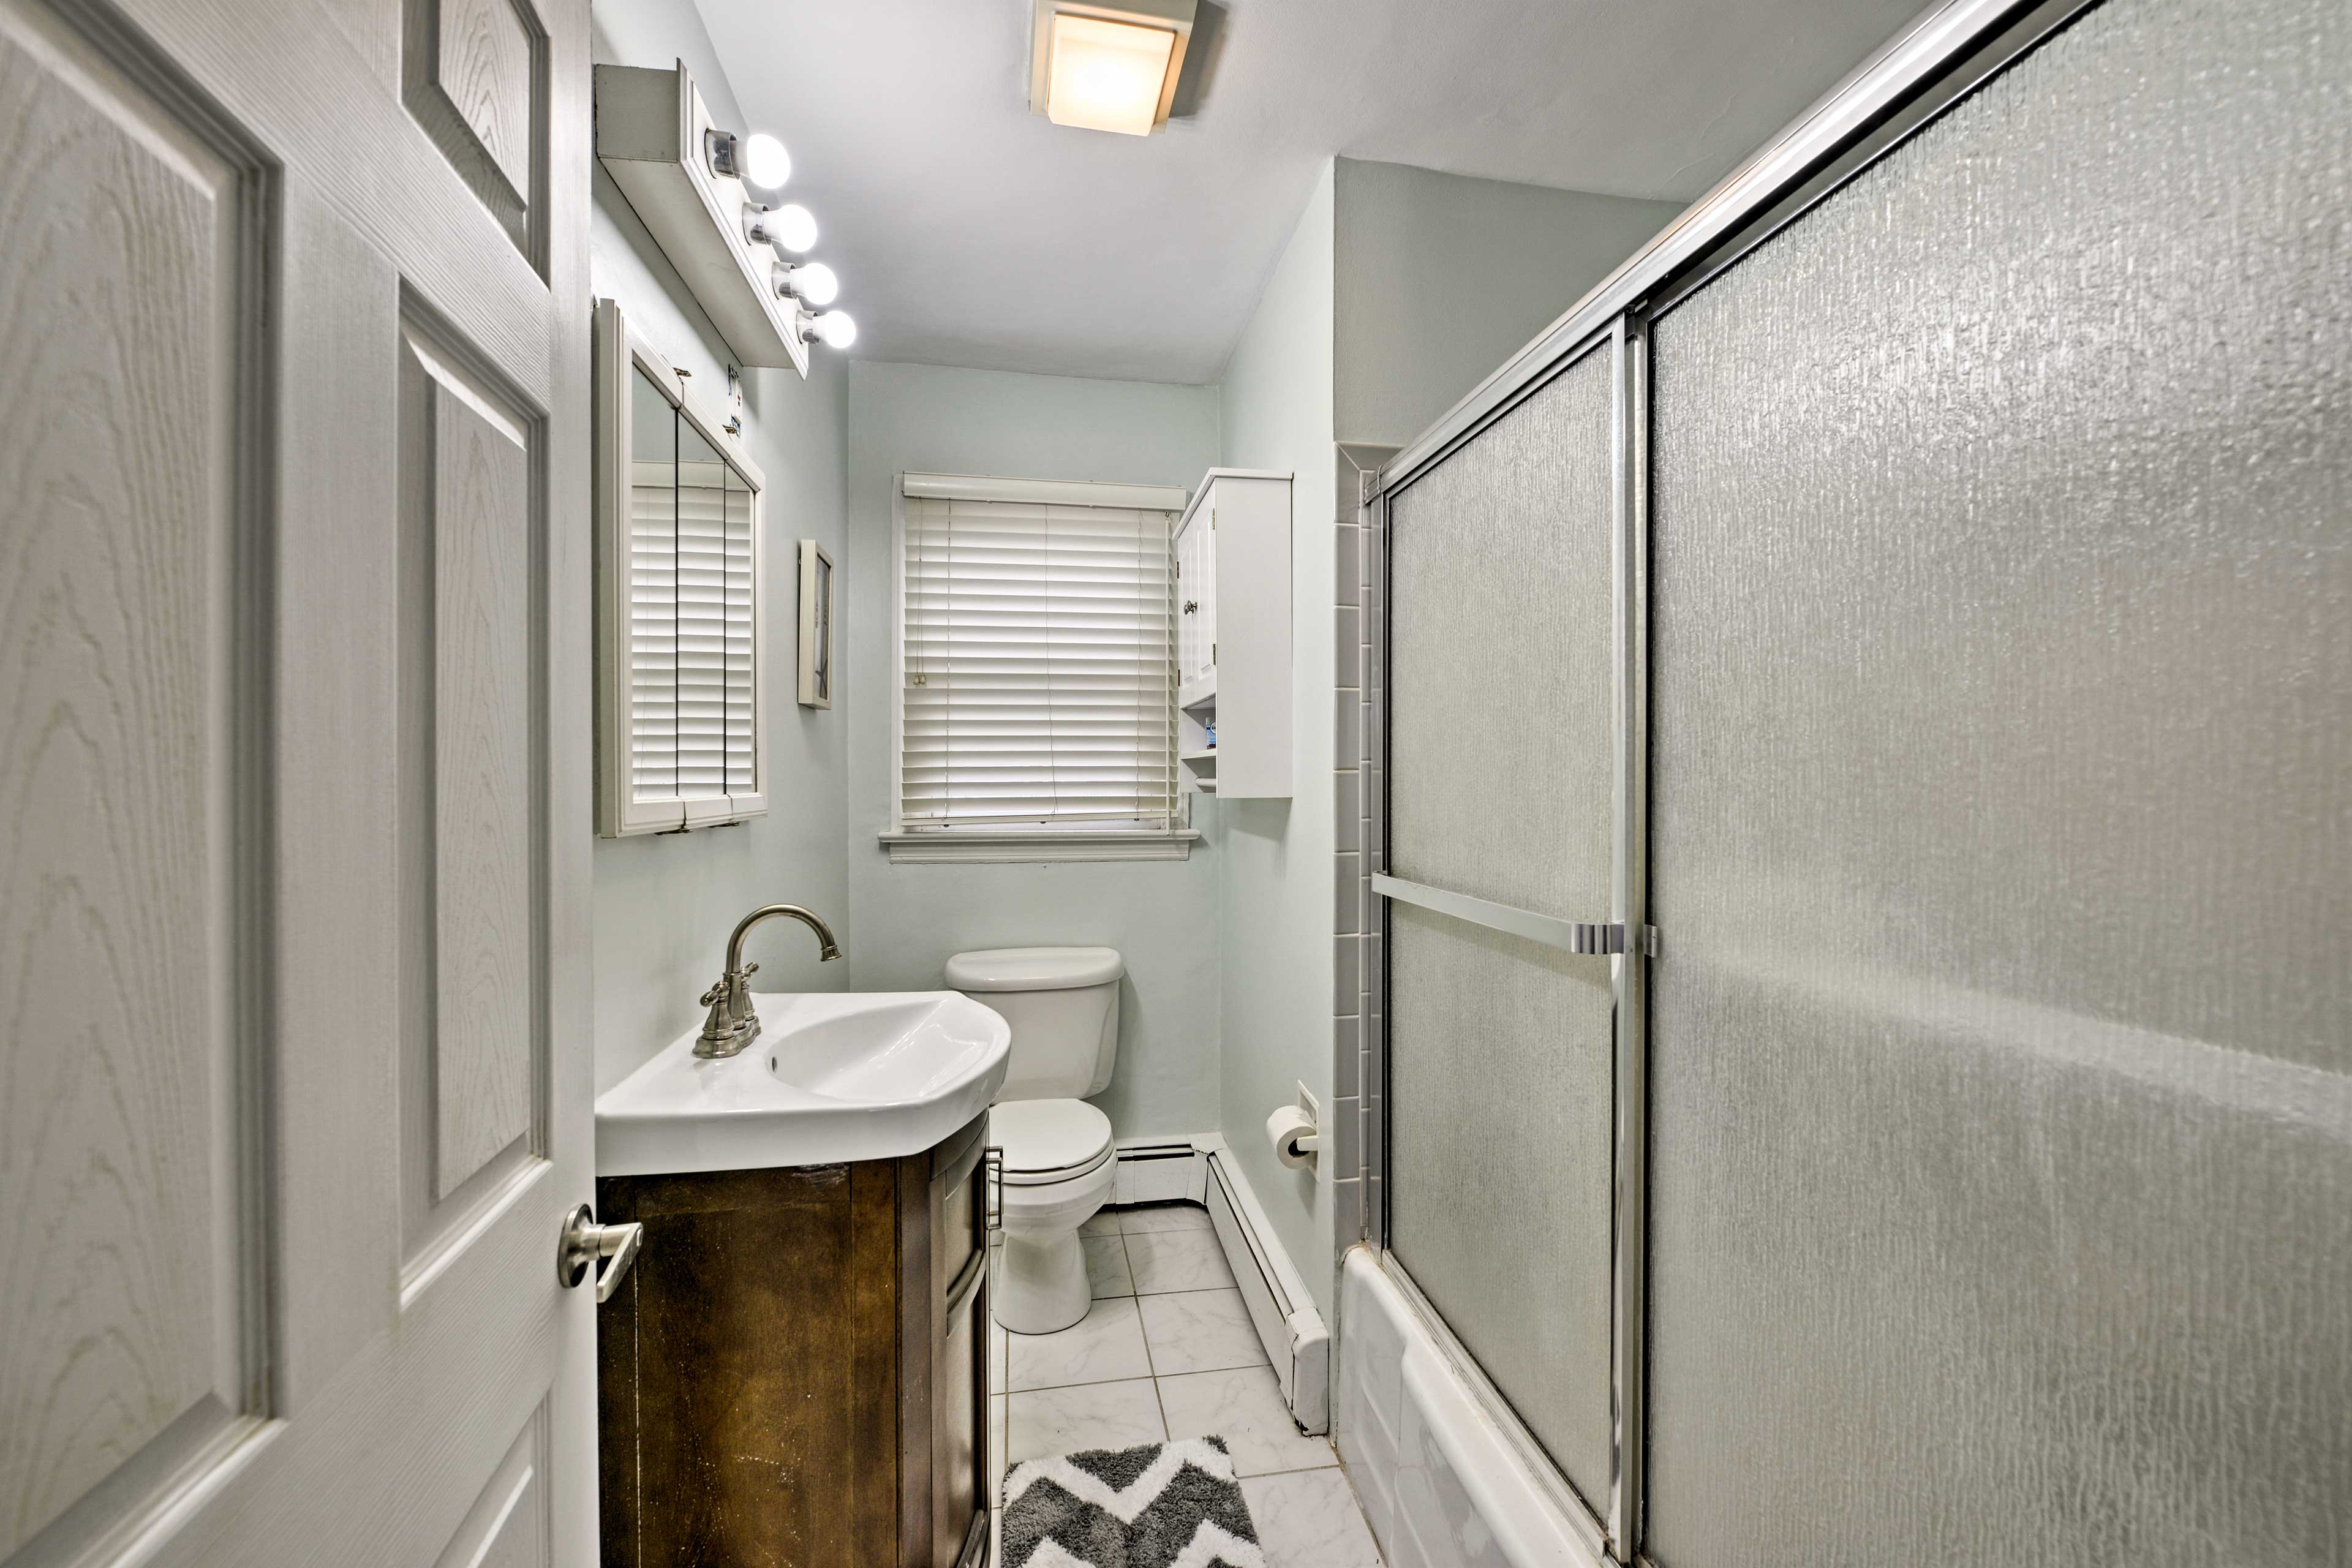 The full bathroom includes a shower/tub combo.